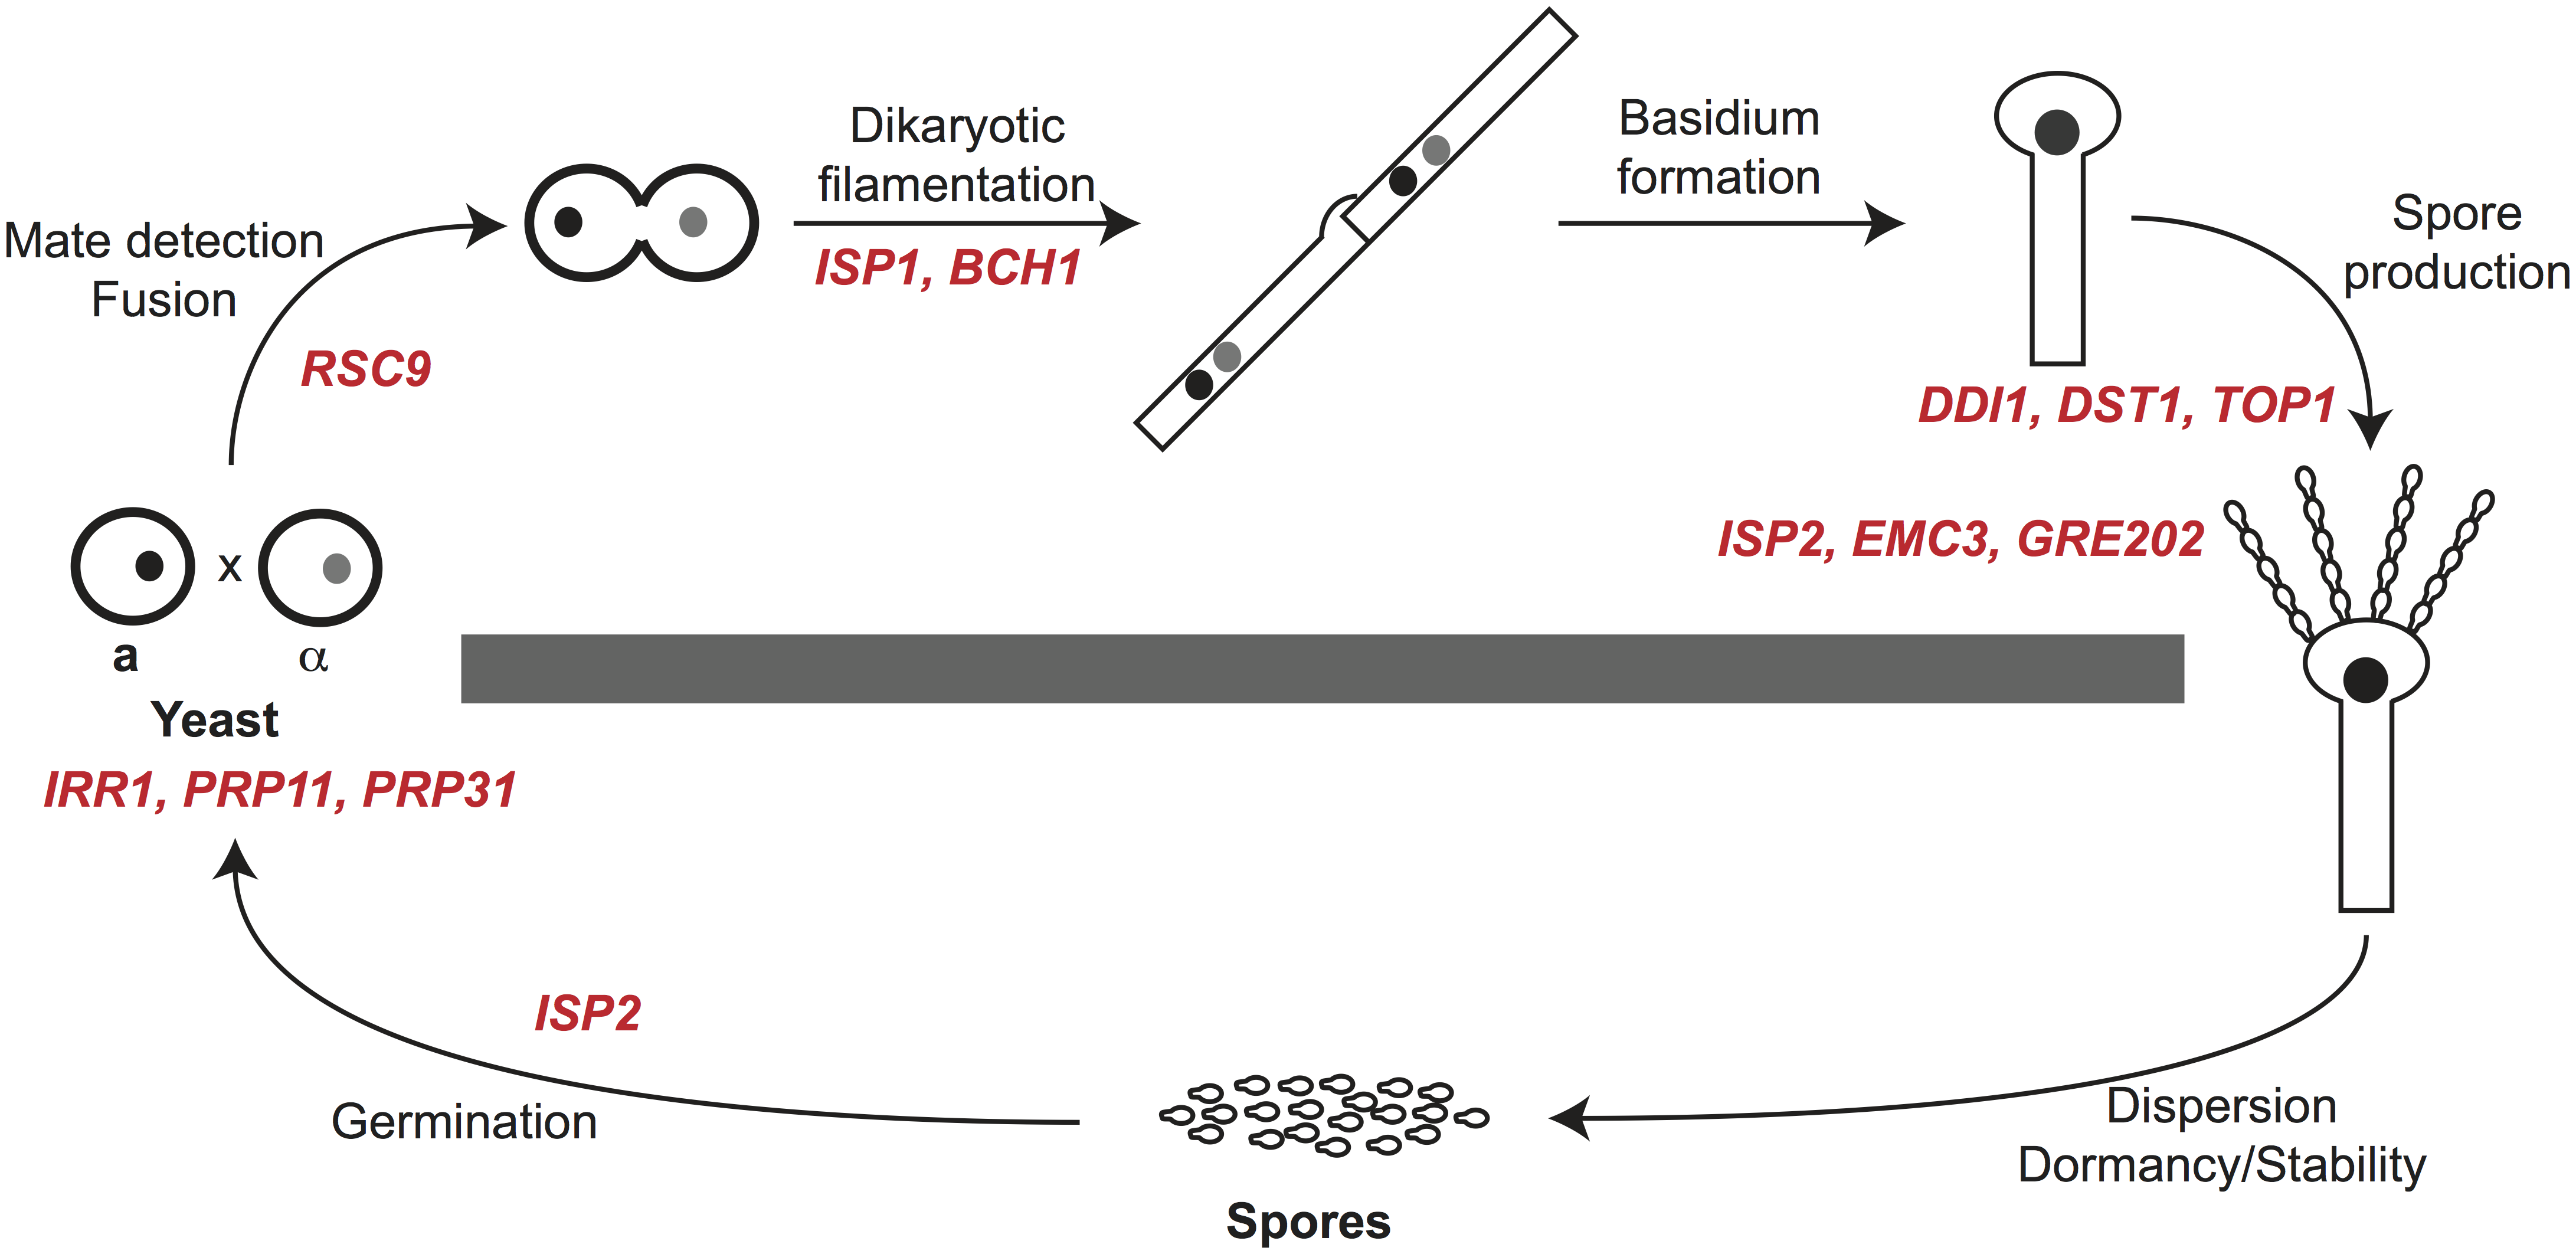 Summary of spore-enriched protein mutant phenotypes.